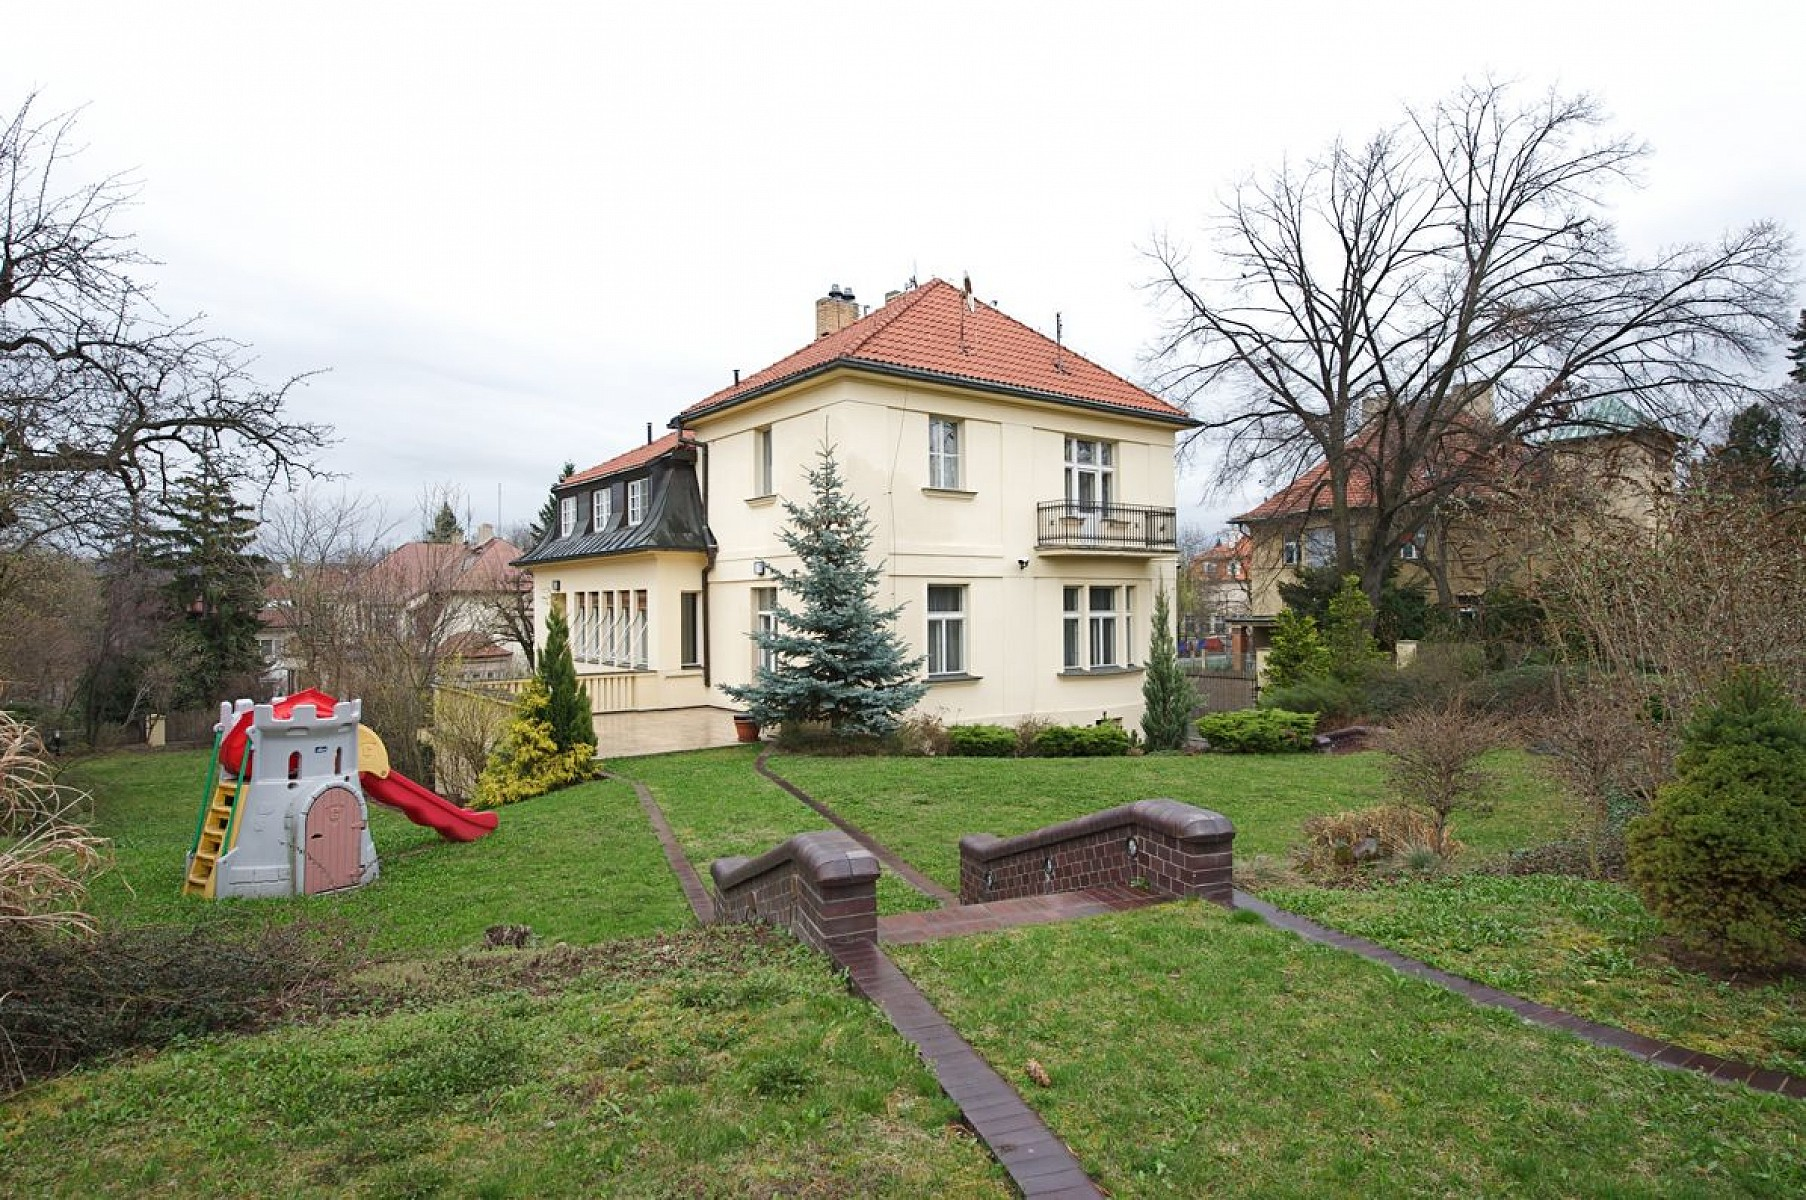 Bubenec, Bubeneč - Prague 6 | Sale, House Five-bedroom (6 + 1), 540 m2